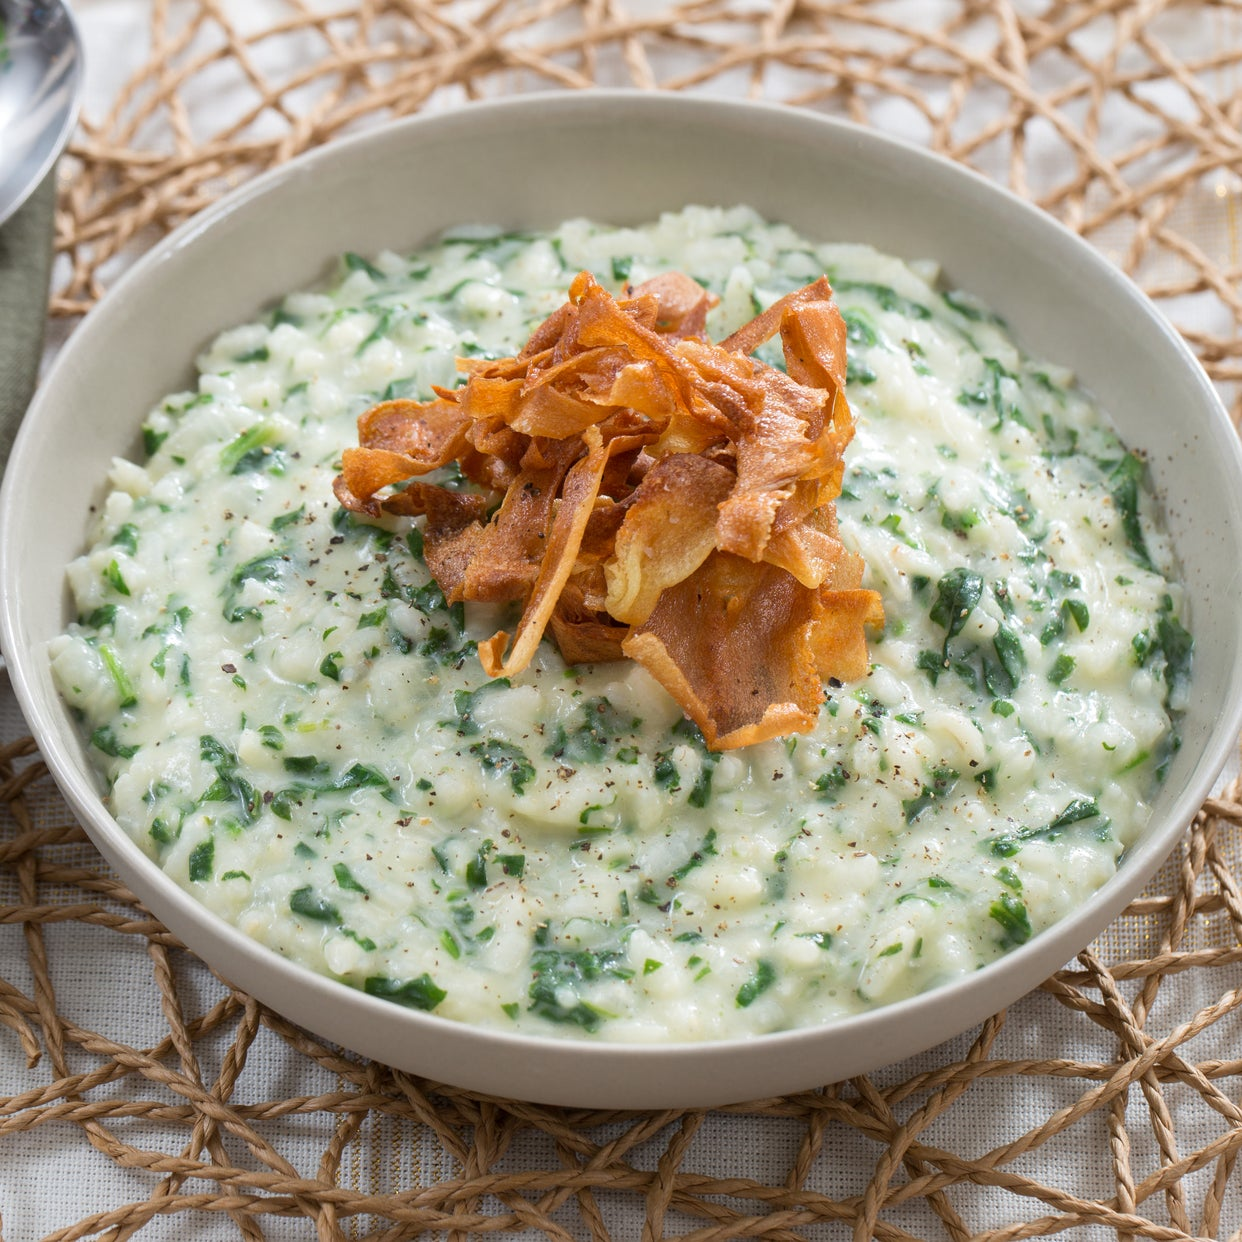 Spinach, Parmesan & Parsnip Risotto with Crispy Parsnip Chips & Sage